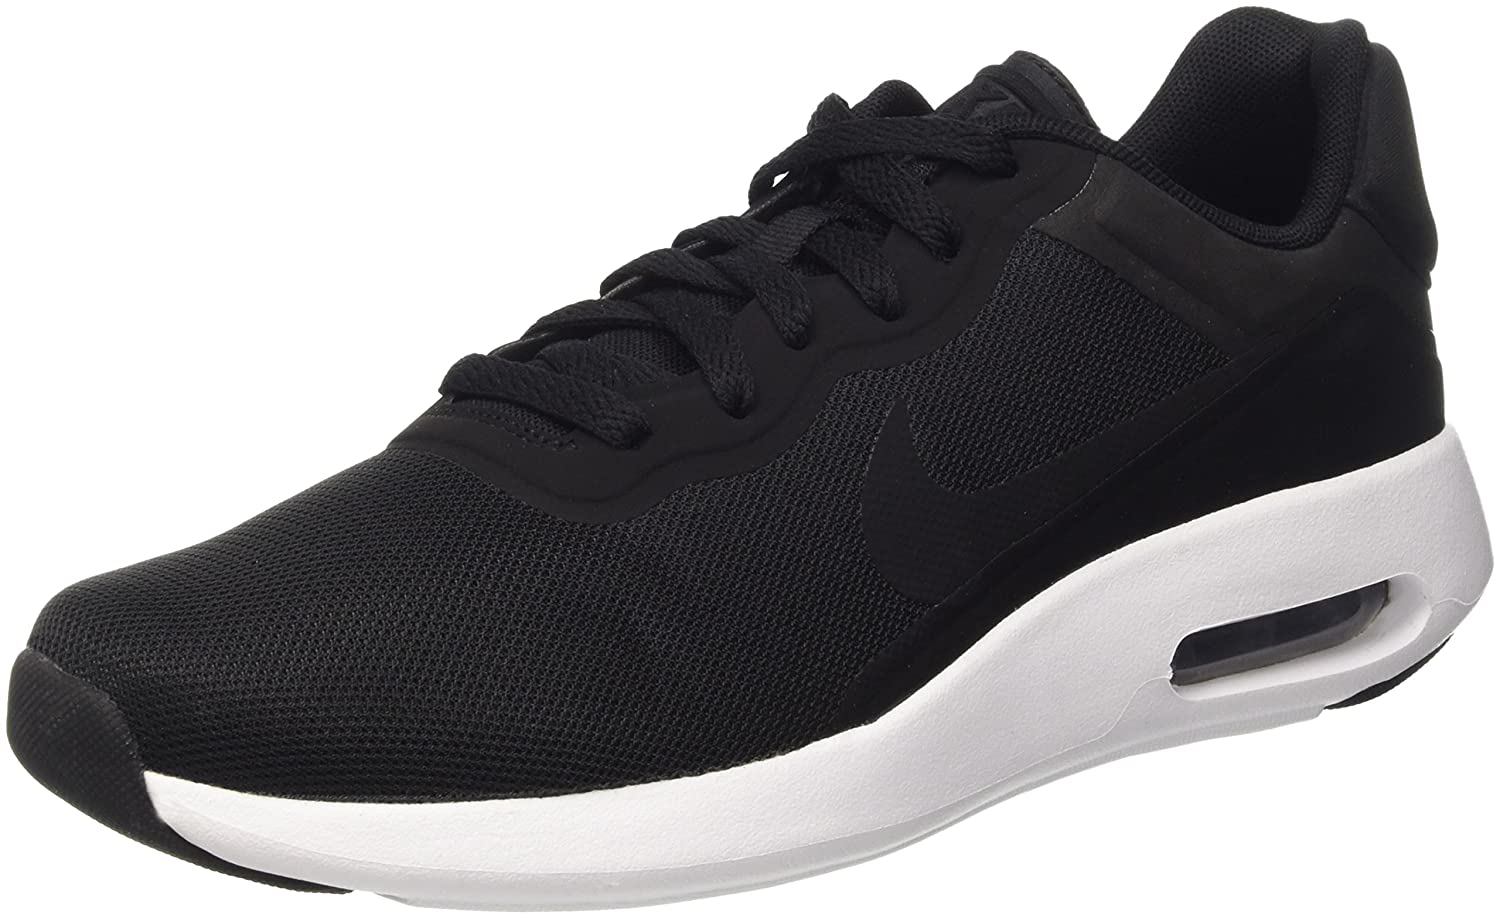 NIKE Air Max Modern Essential Mens Running Trainers 844874 Sneakers Shoes B01HXEKJPG 12 M US|Black/Black-anthracite-white